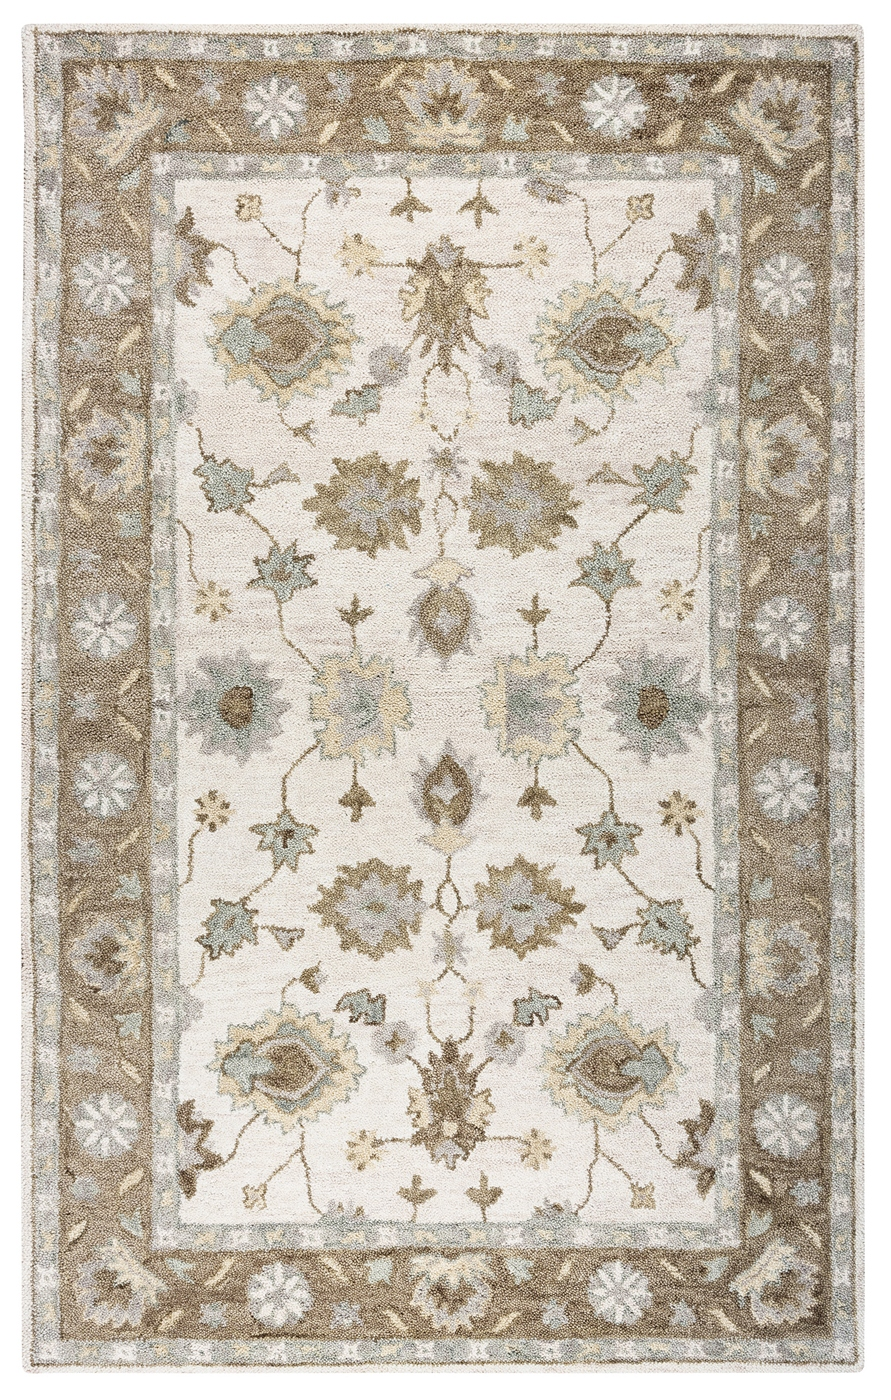 Leone Bordered Vines Wool Area Rug In Natural Amp Brown 8